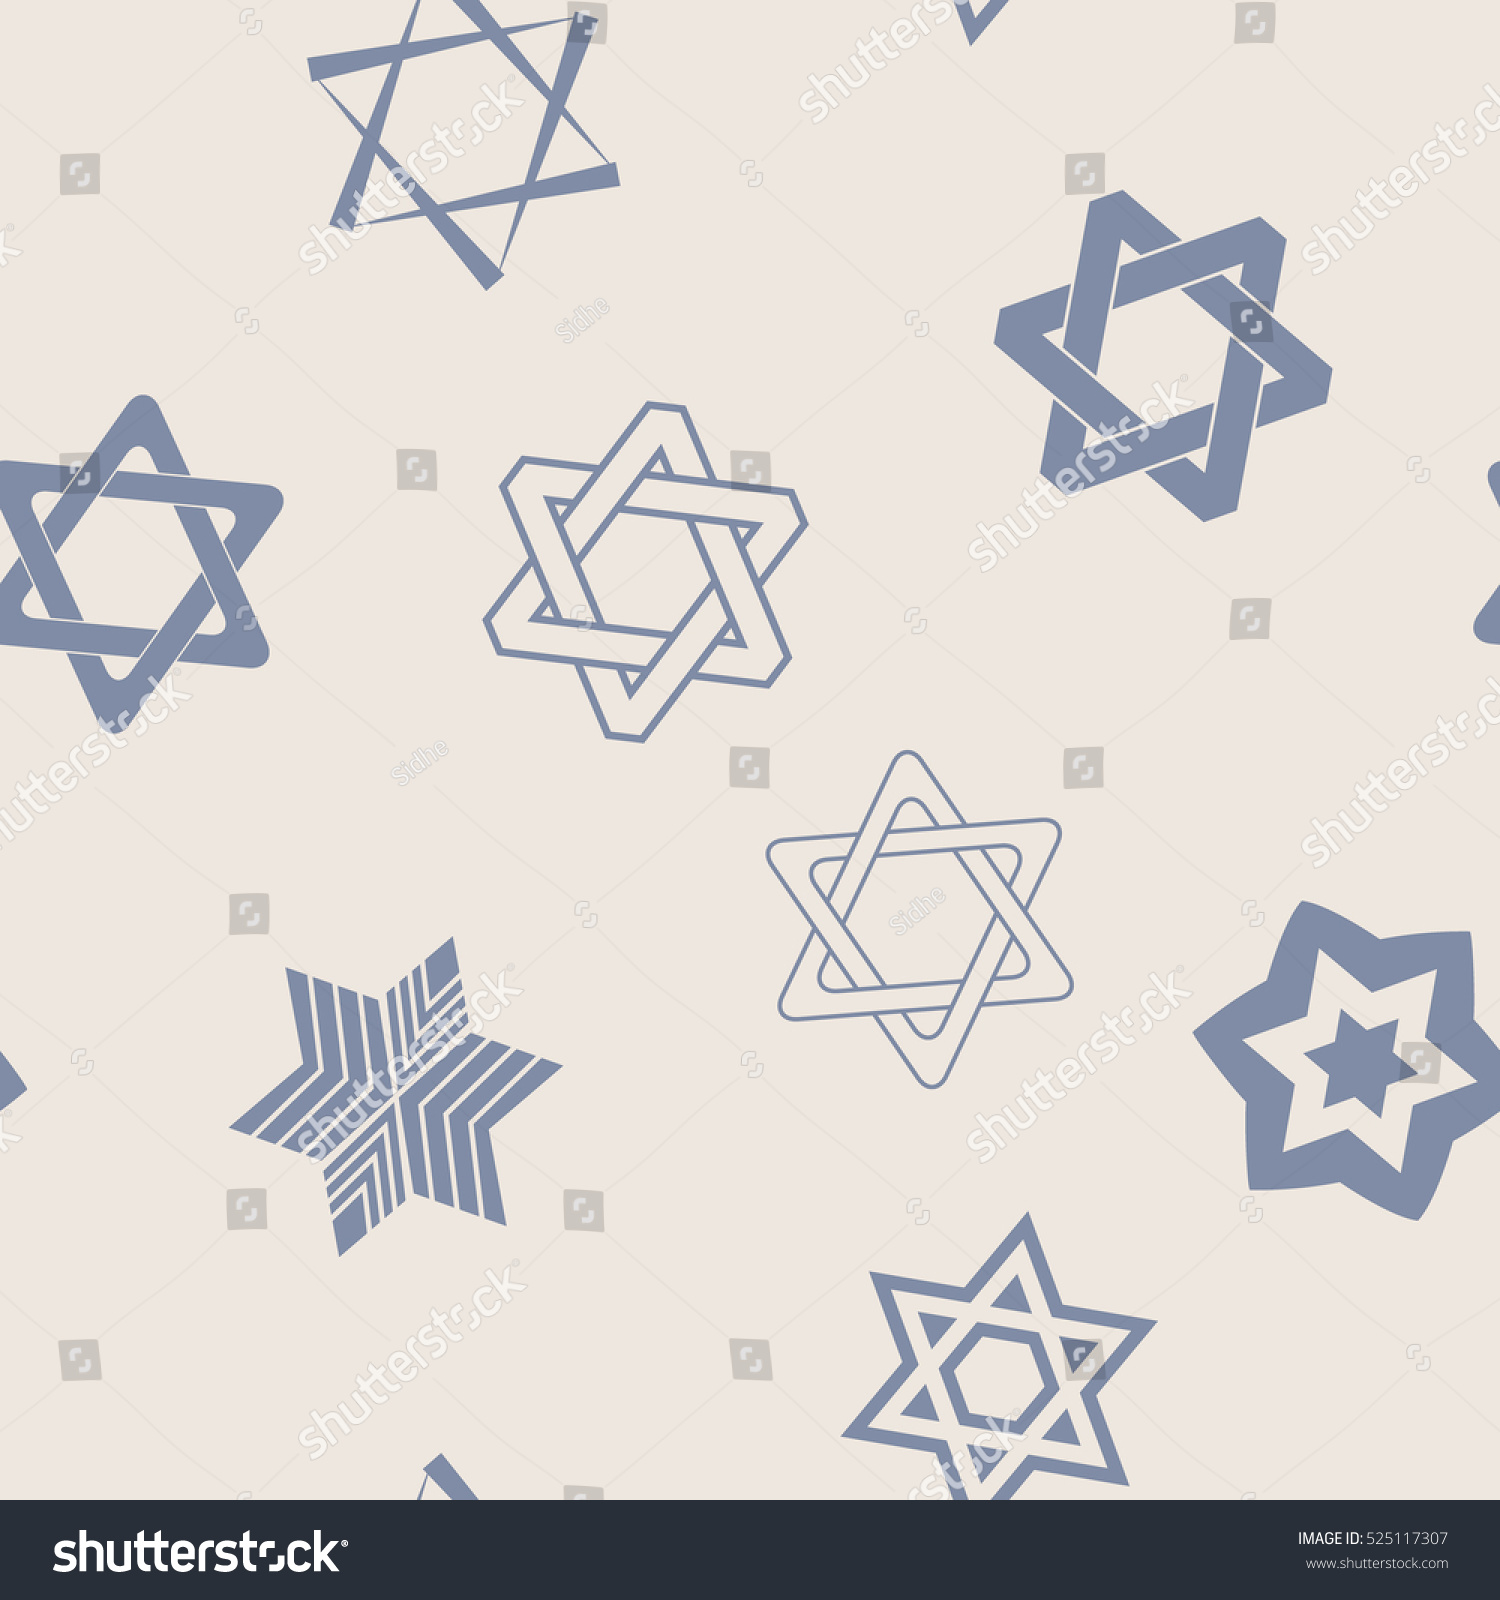 Seamless pattern star david traditional jewish stock vector seamless pattern with star of david traditional jewish symbol for your design biocorpaavc Choice Image